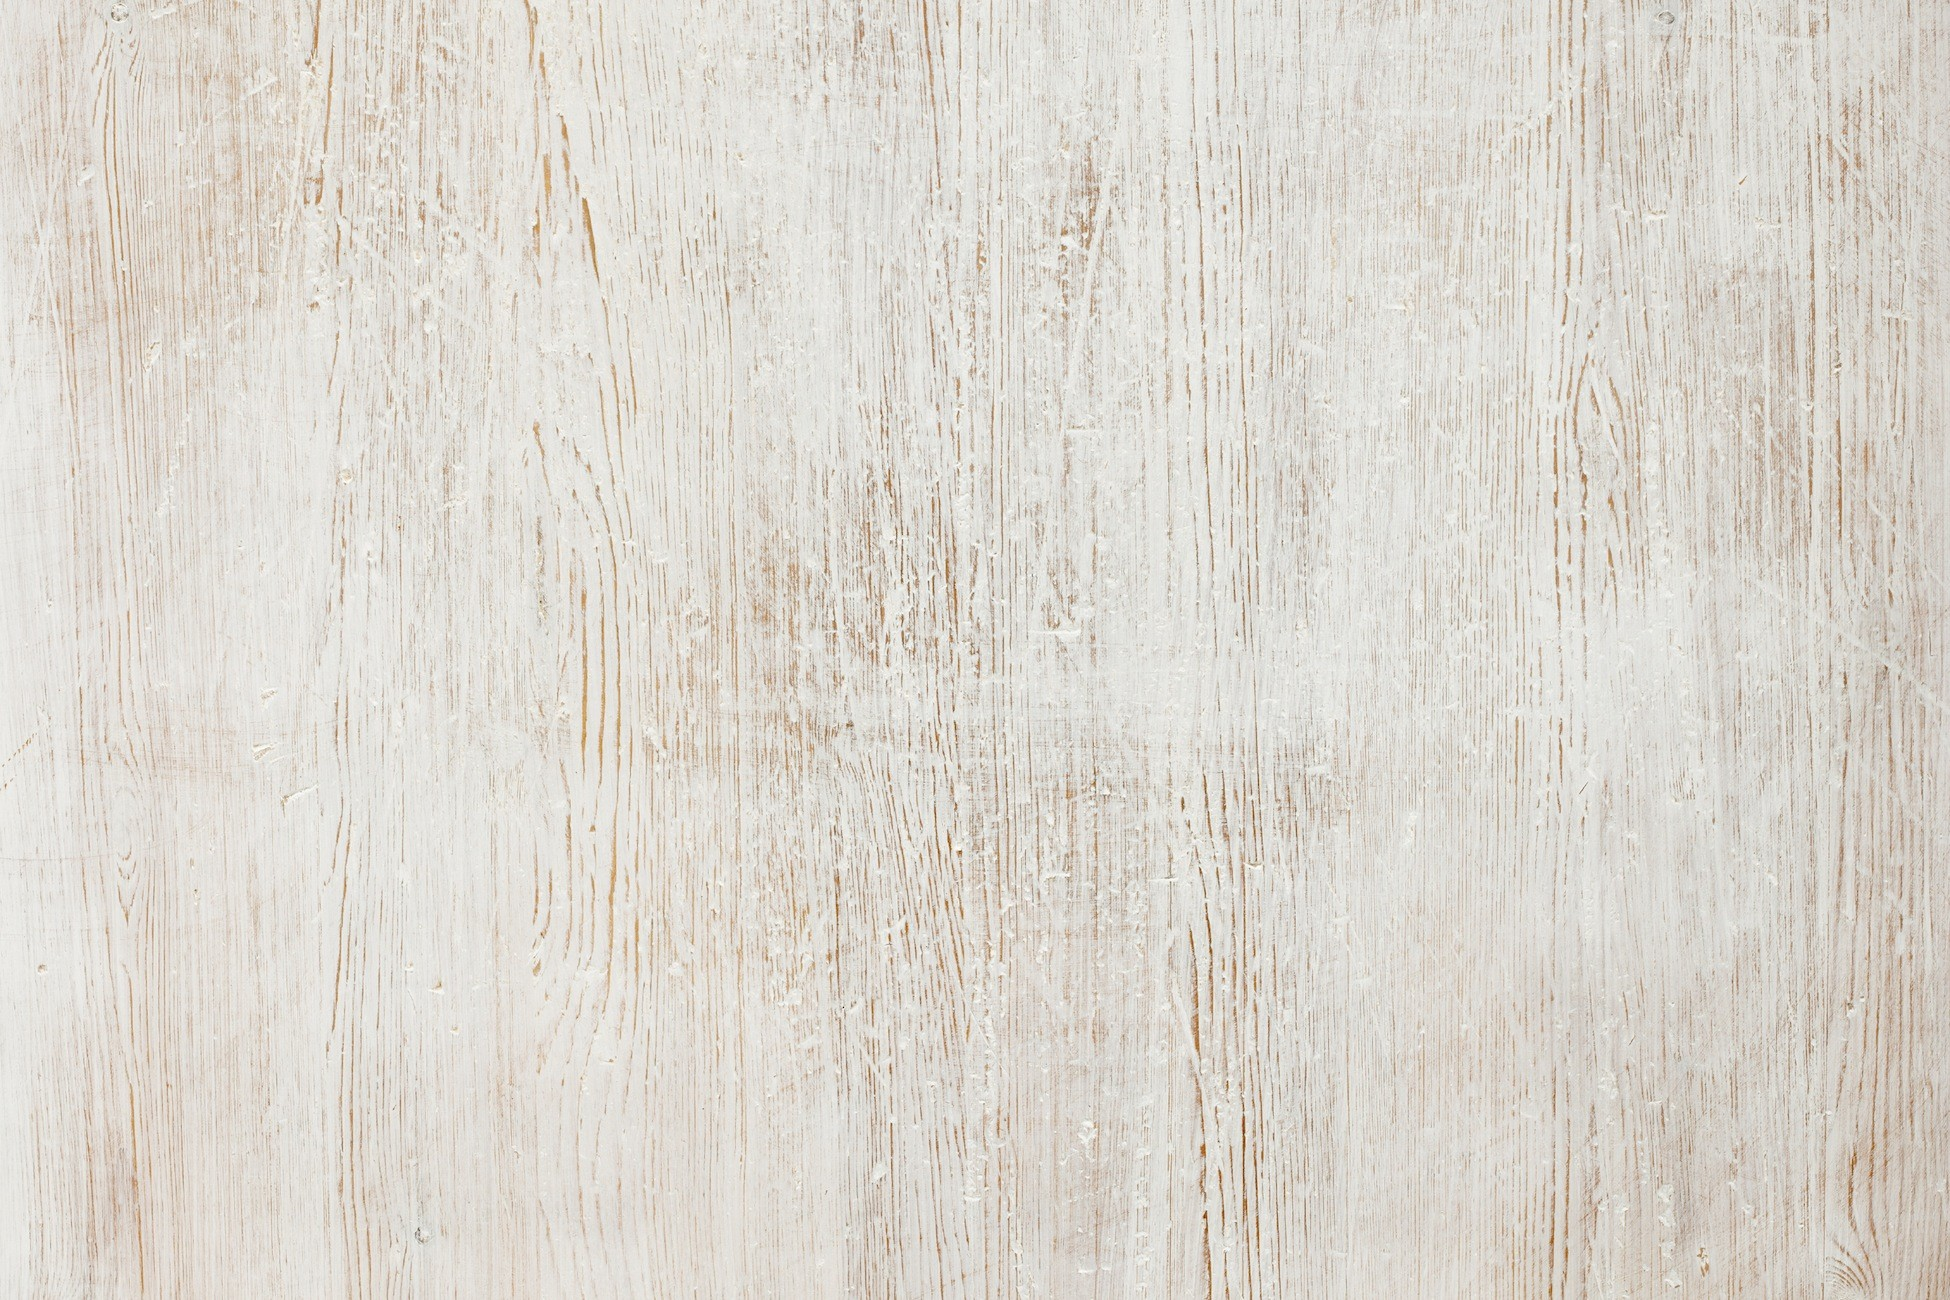 White Wood background  Download free beautiful High